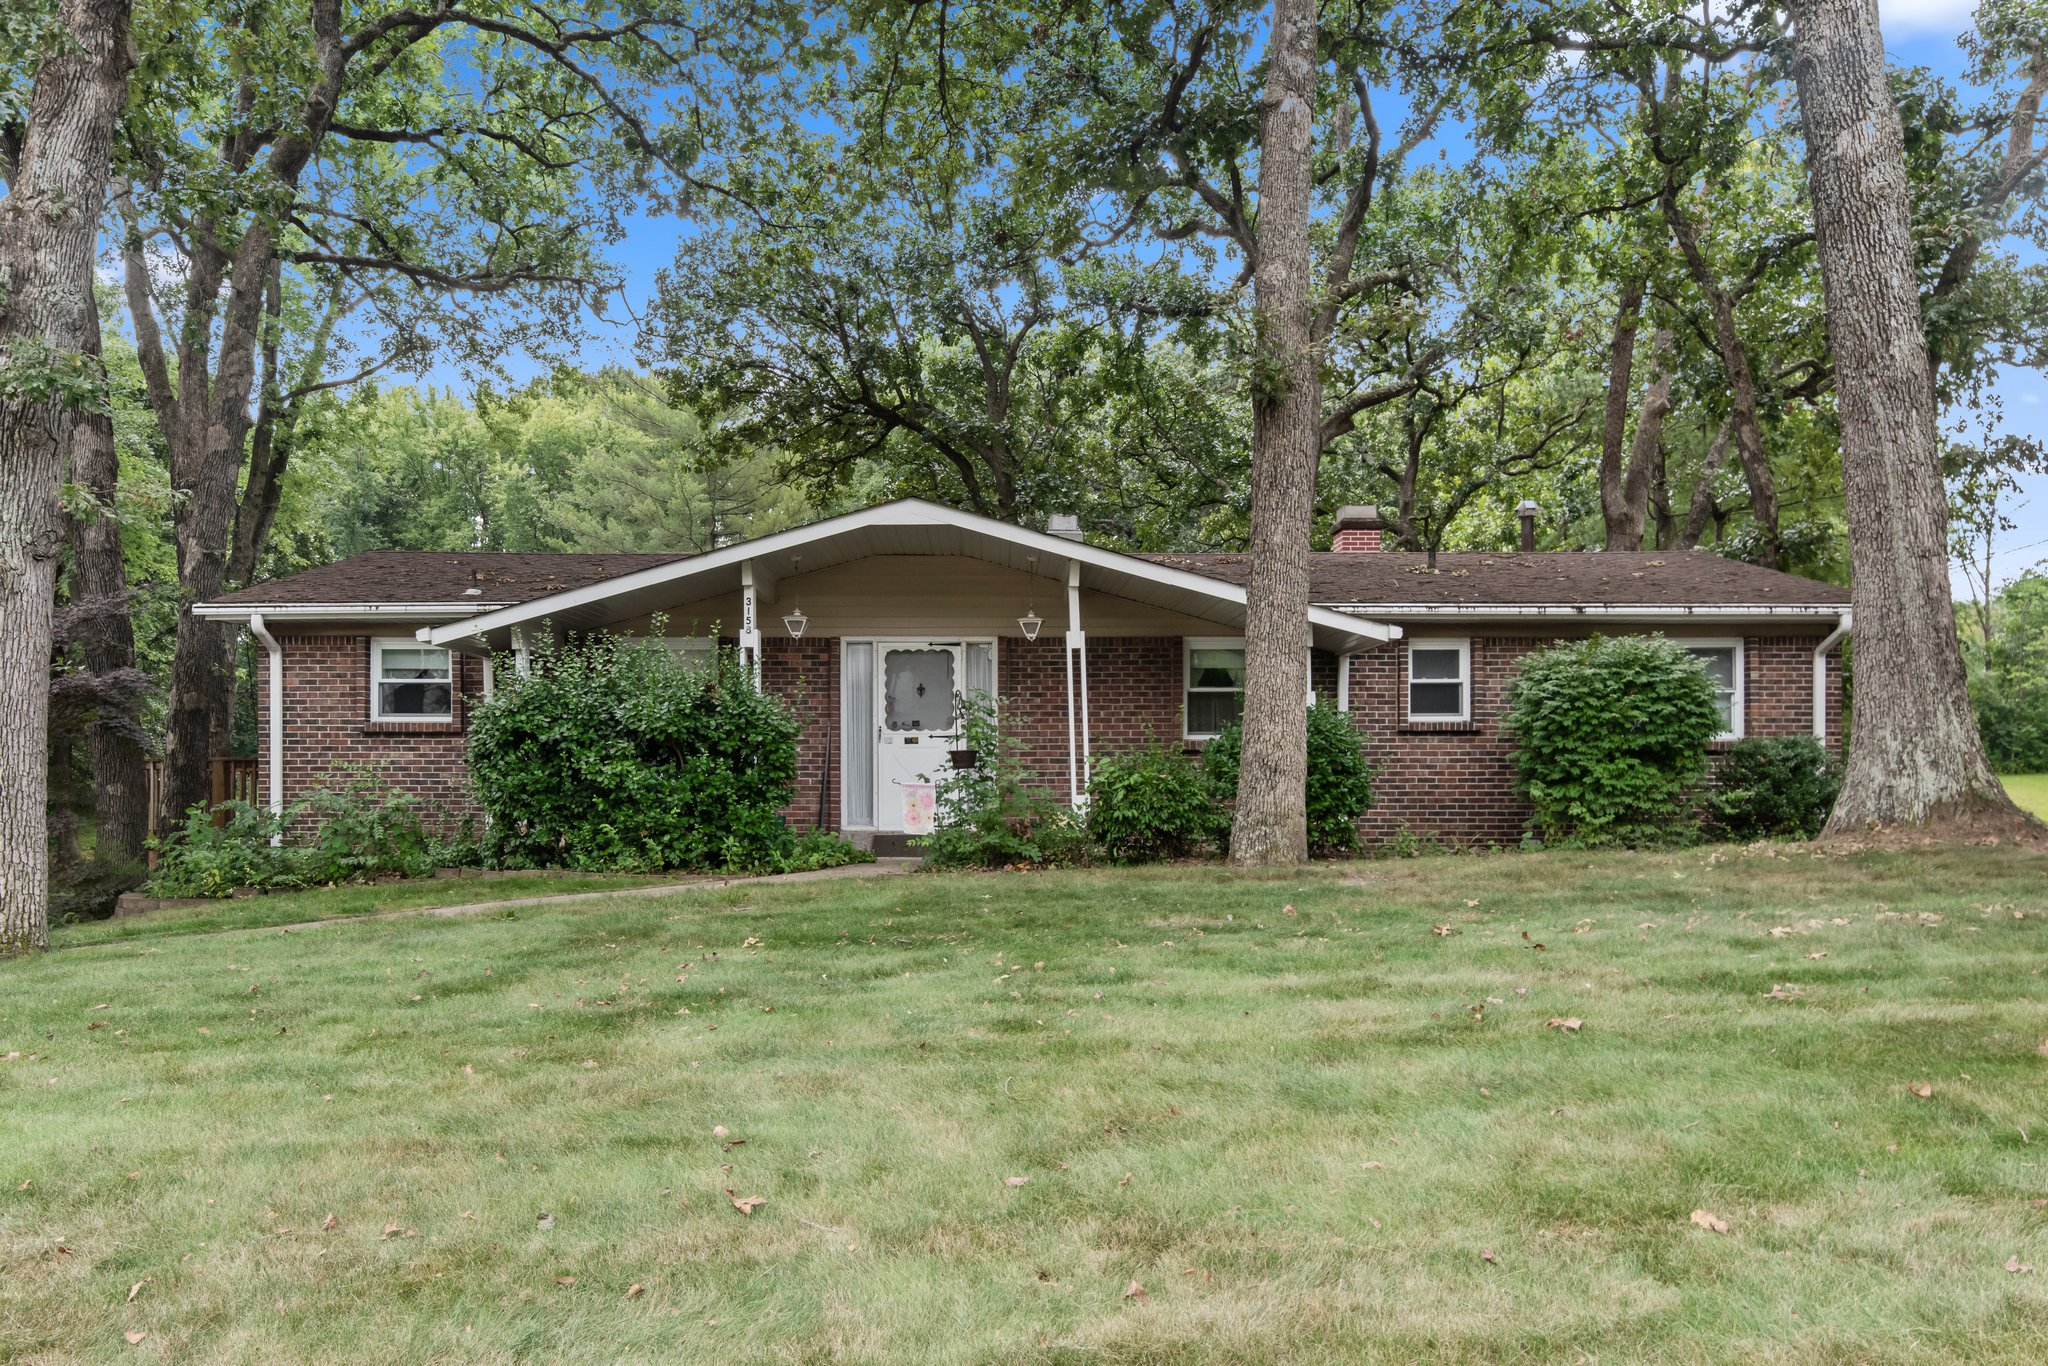 3158 McClay Rd, St Peters, MO 63376, USA Photo 3